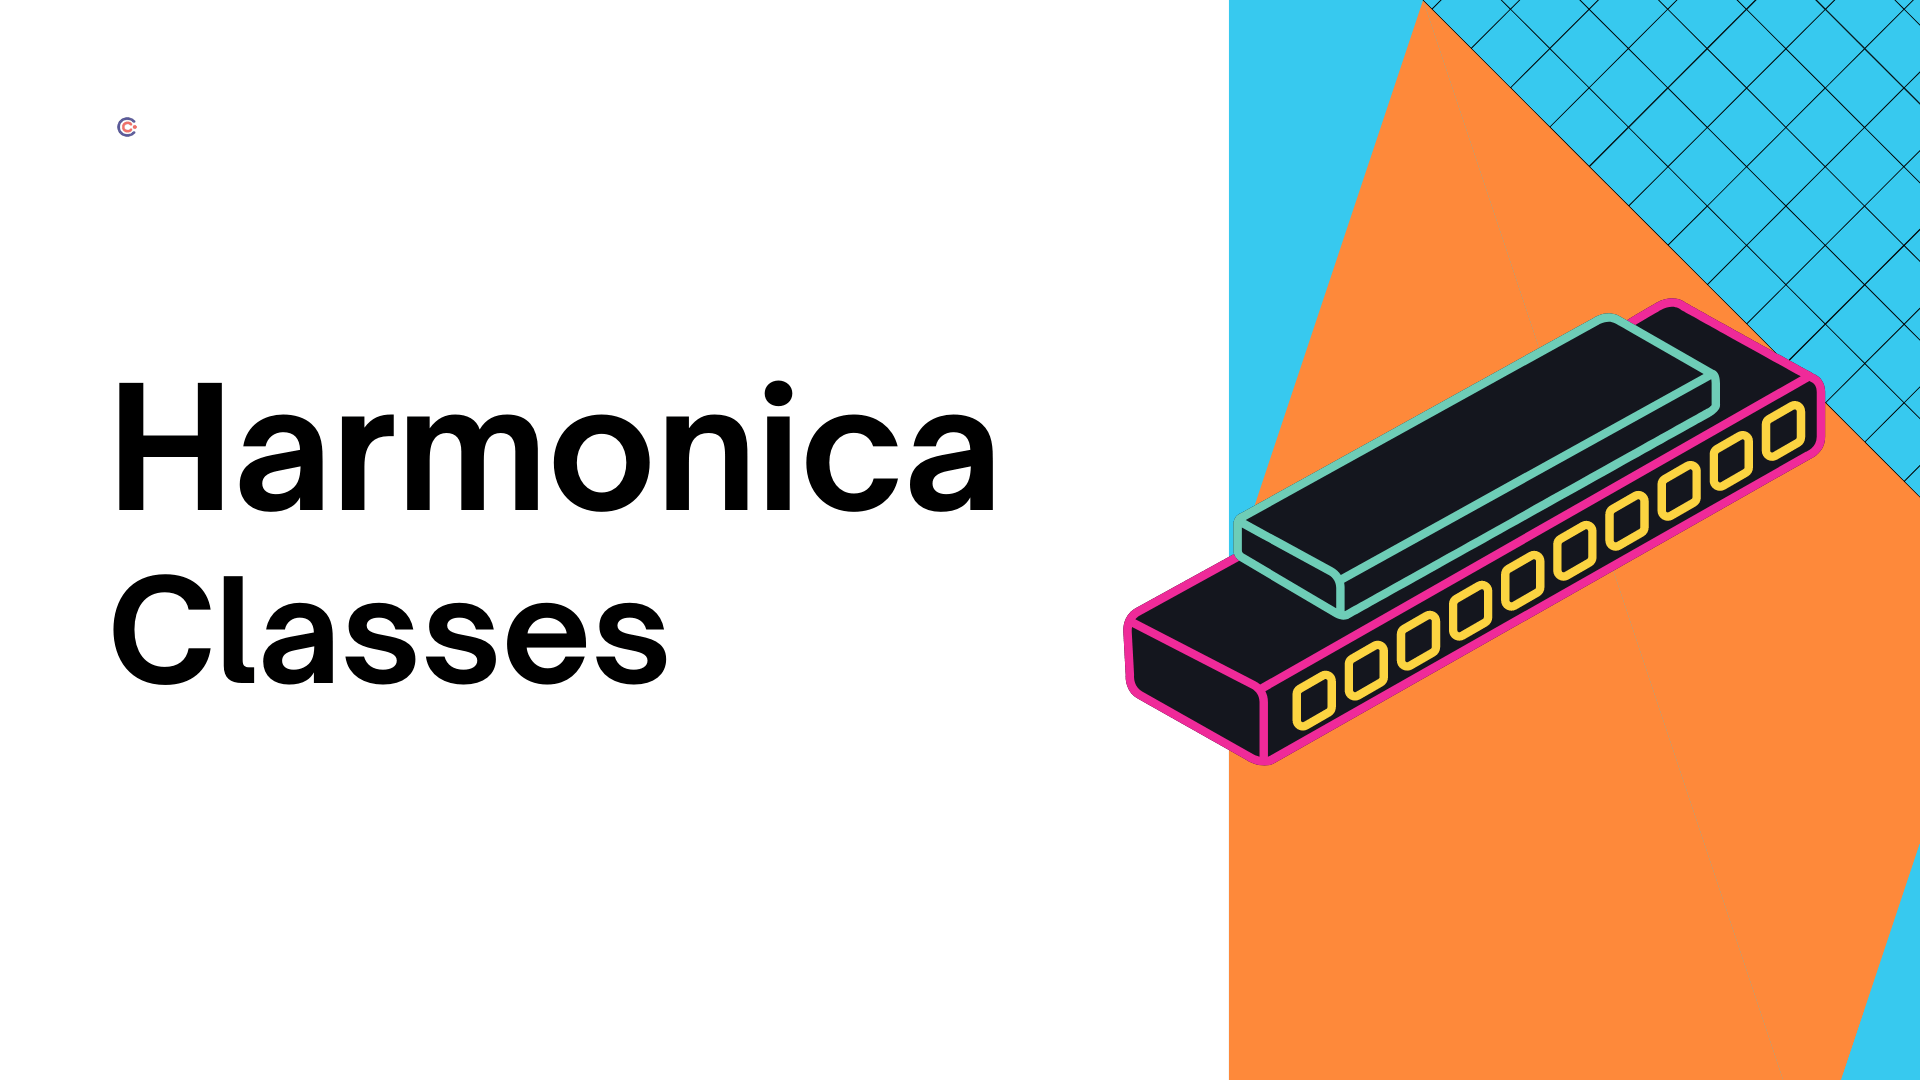 5 Best Harmonica Classes - Learn Playing Harmonica Online